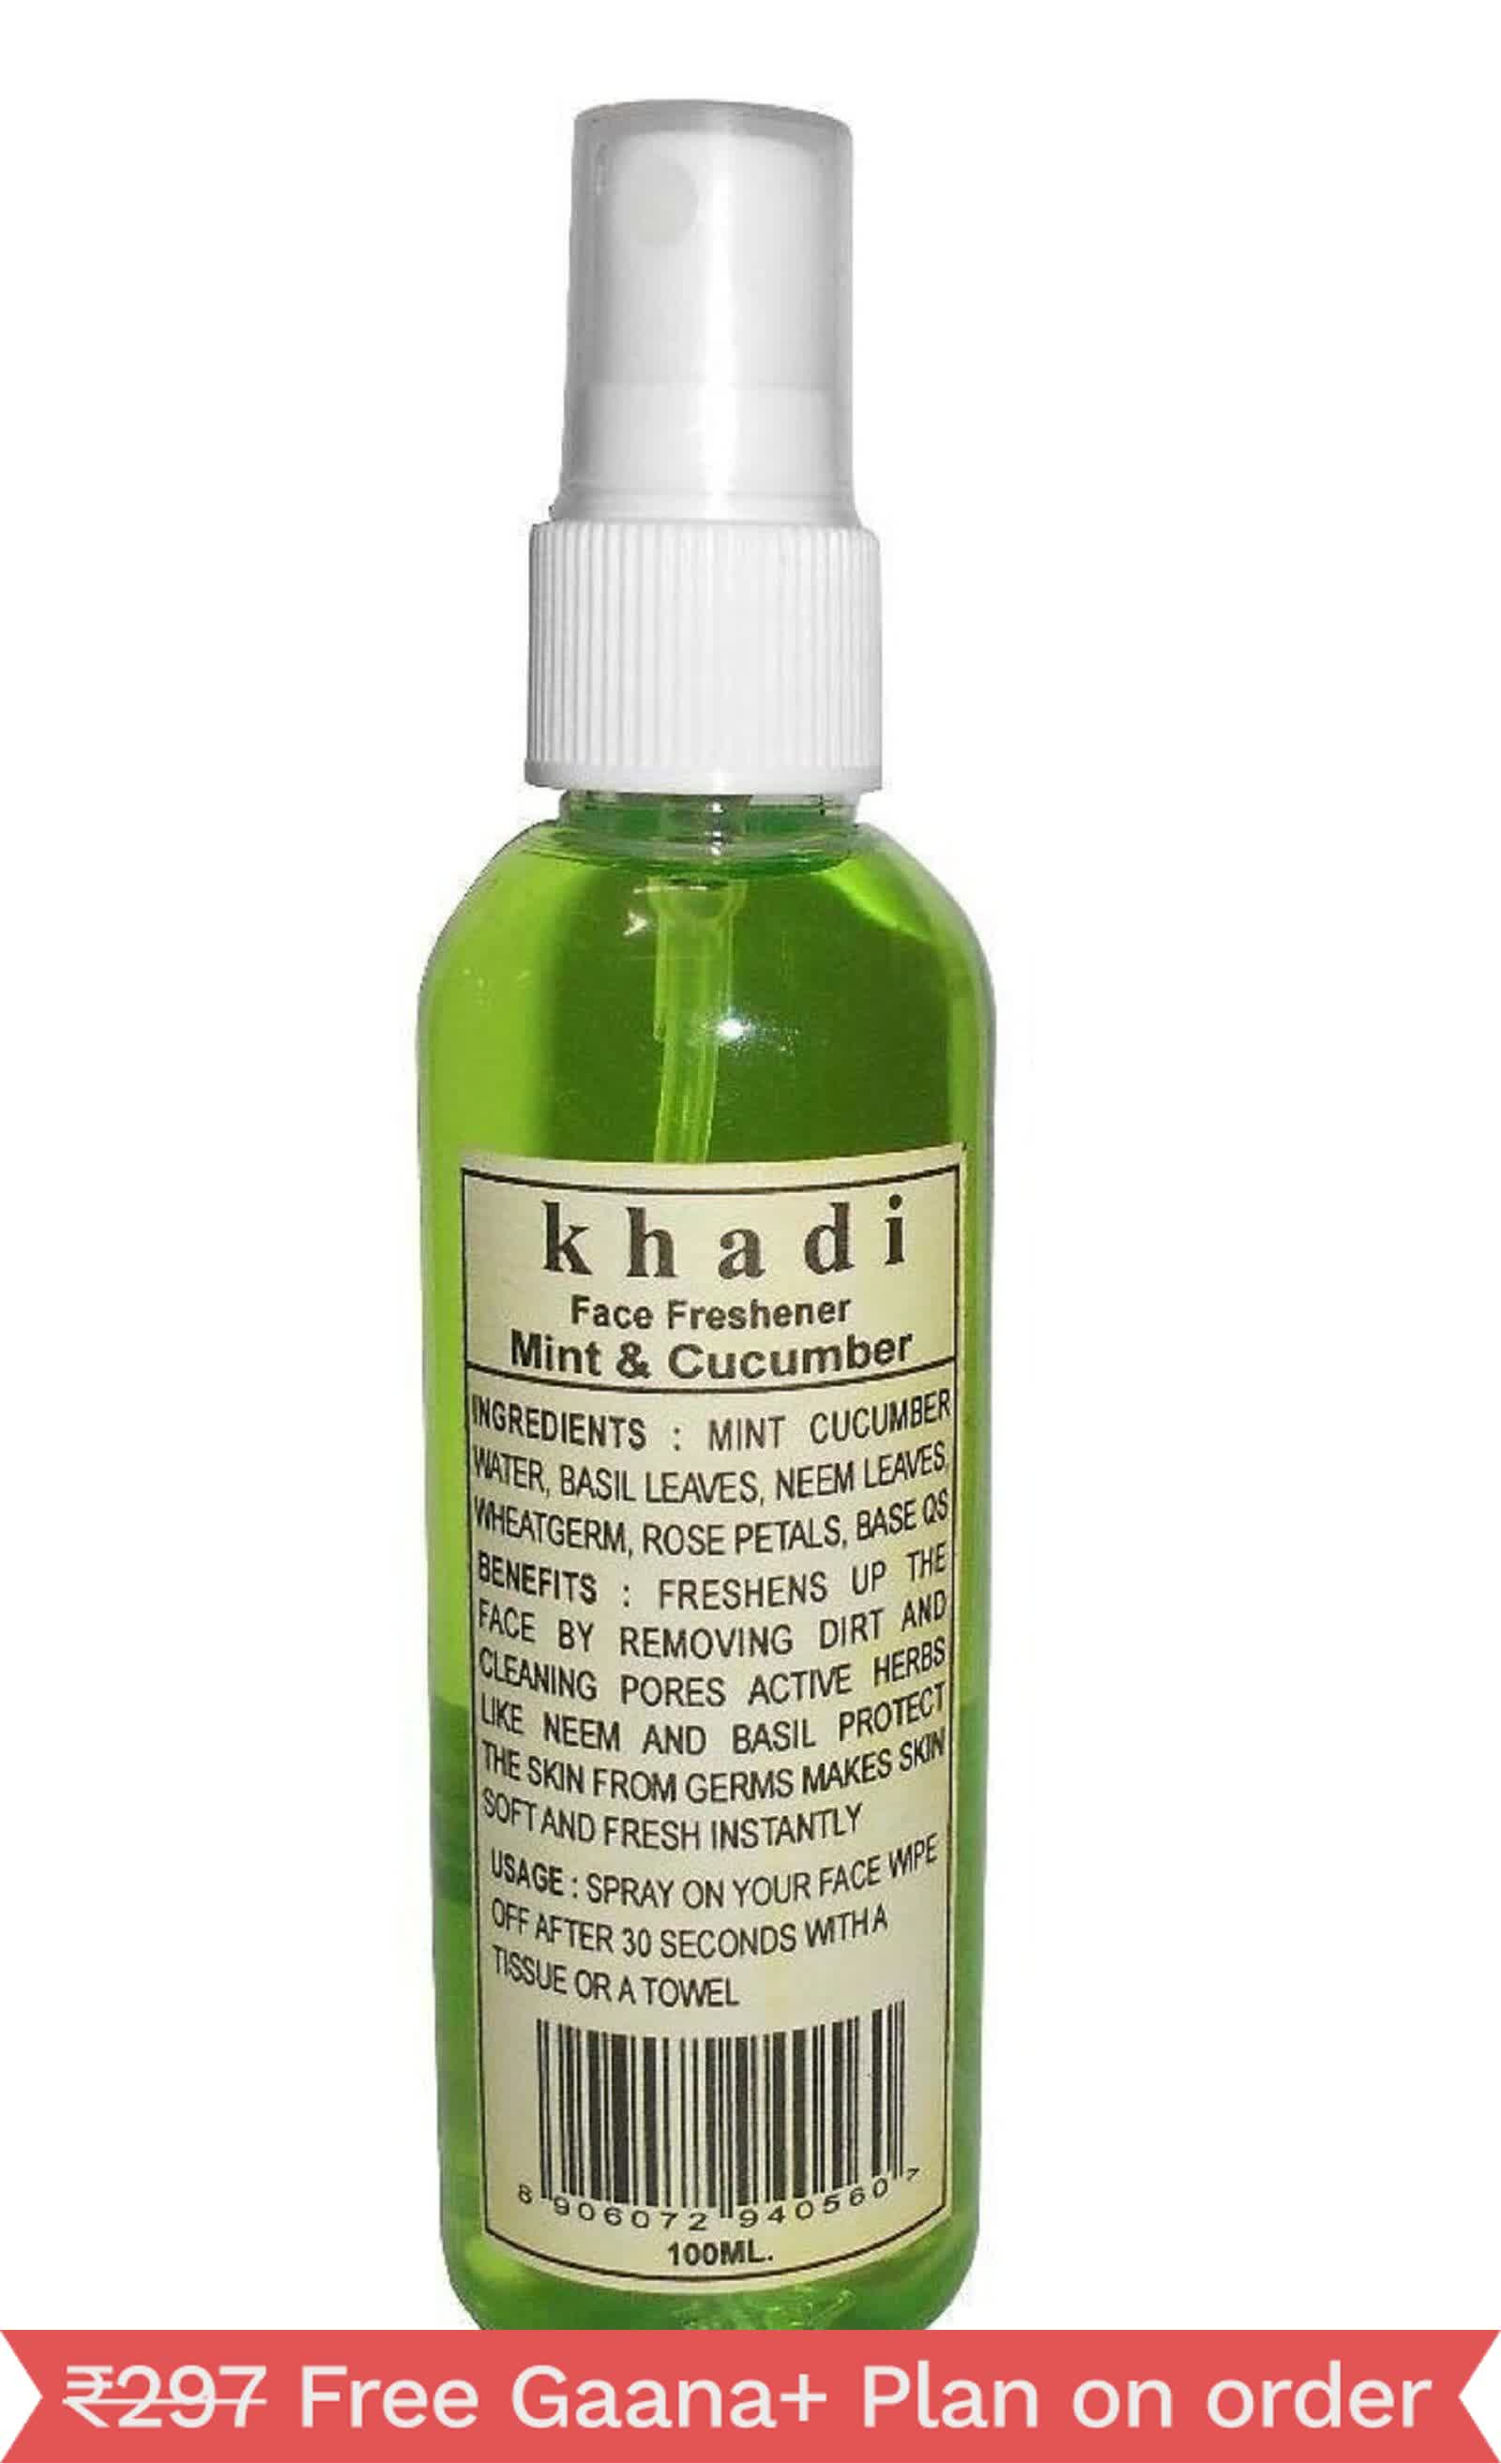 Khadi Herbal Ayurvedic Mint And Cucumber Face Freshner (100ml each, Pack of 2)